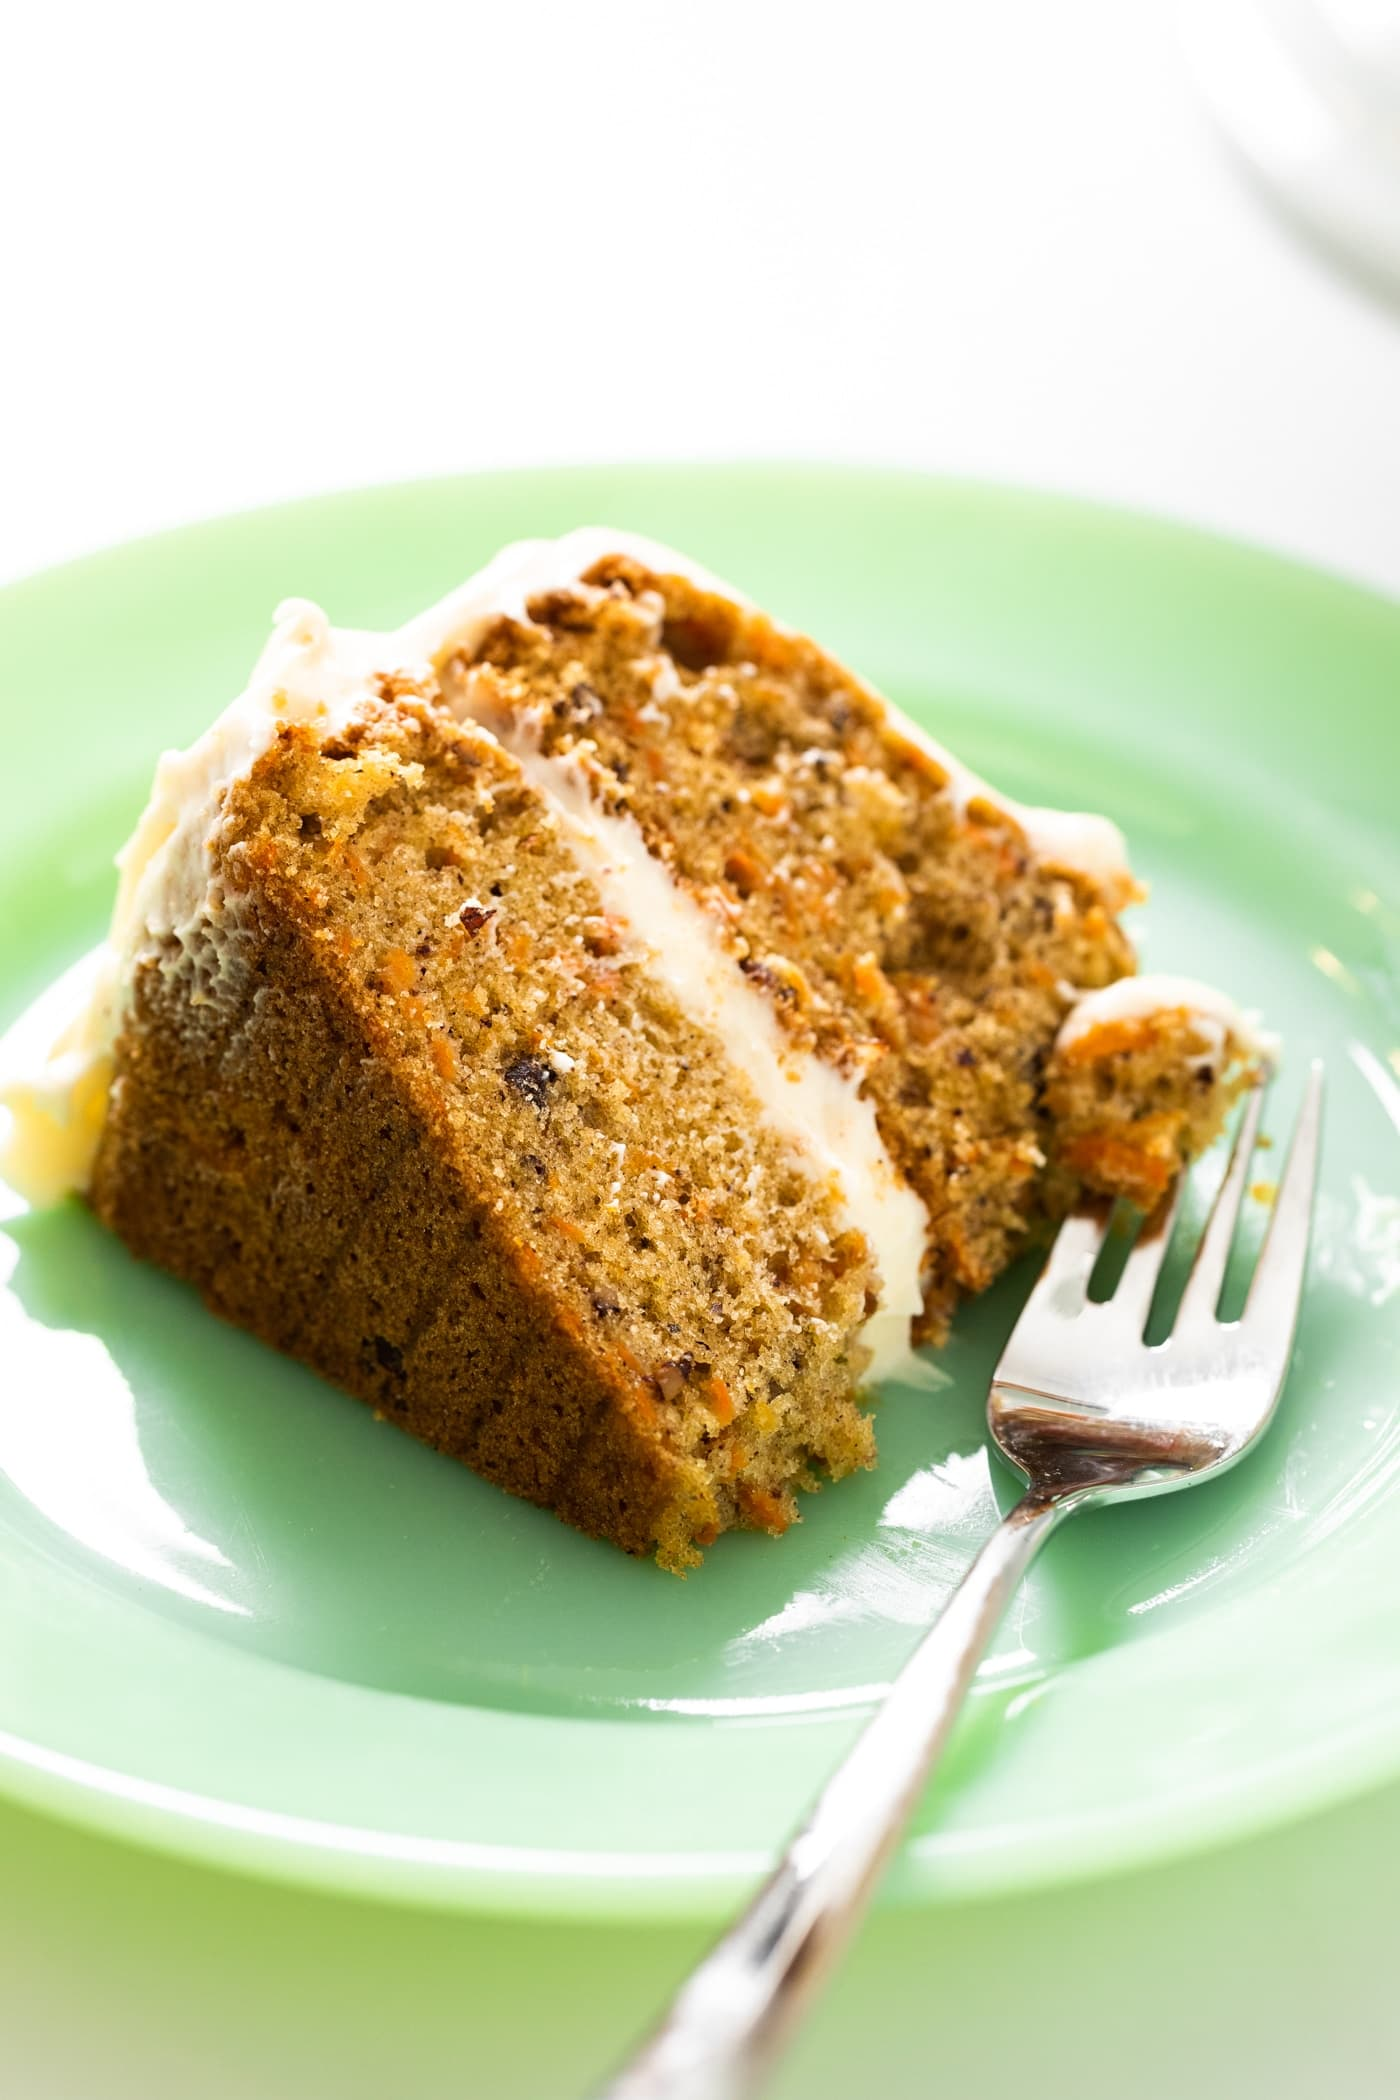 Big slice of carrot cake with two layers and white cream cheese frosting in between layers sitting on green colored place with fork